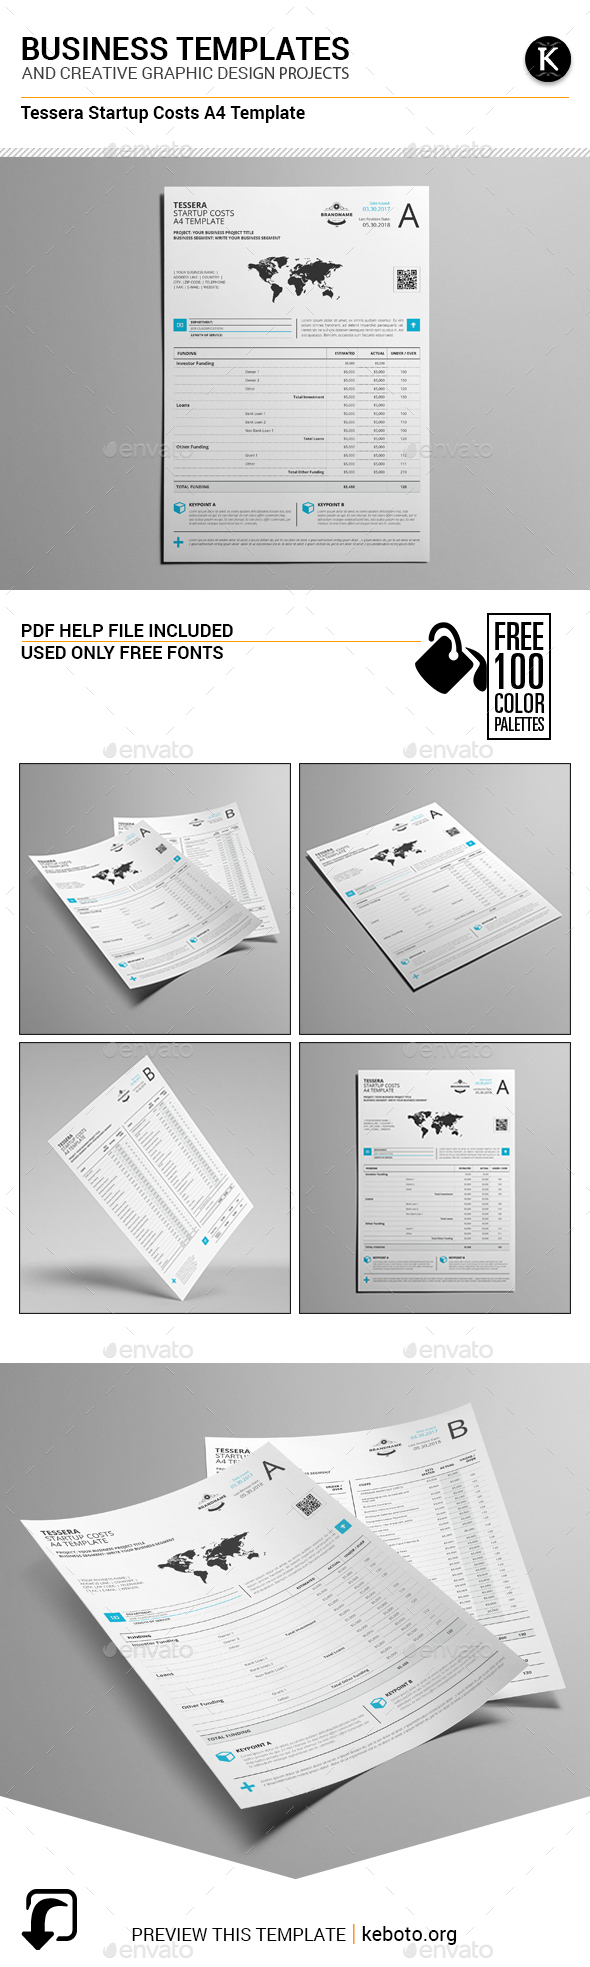 Tessera Startup Costs A4 Template - Miscellaneous Print Templates